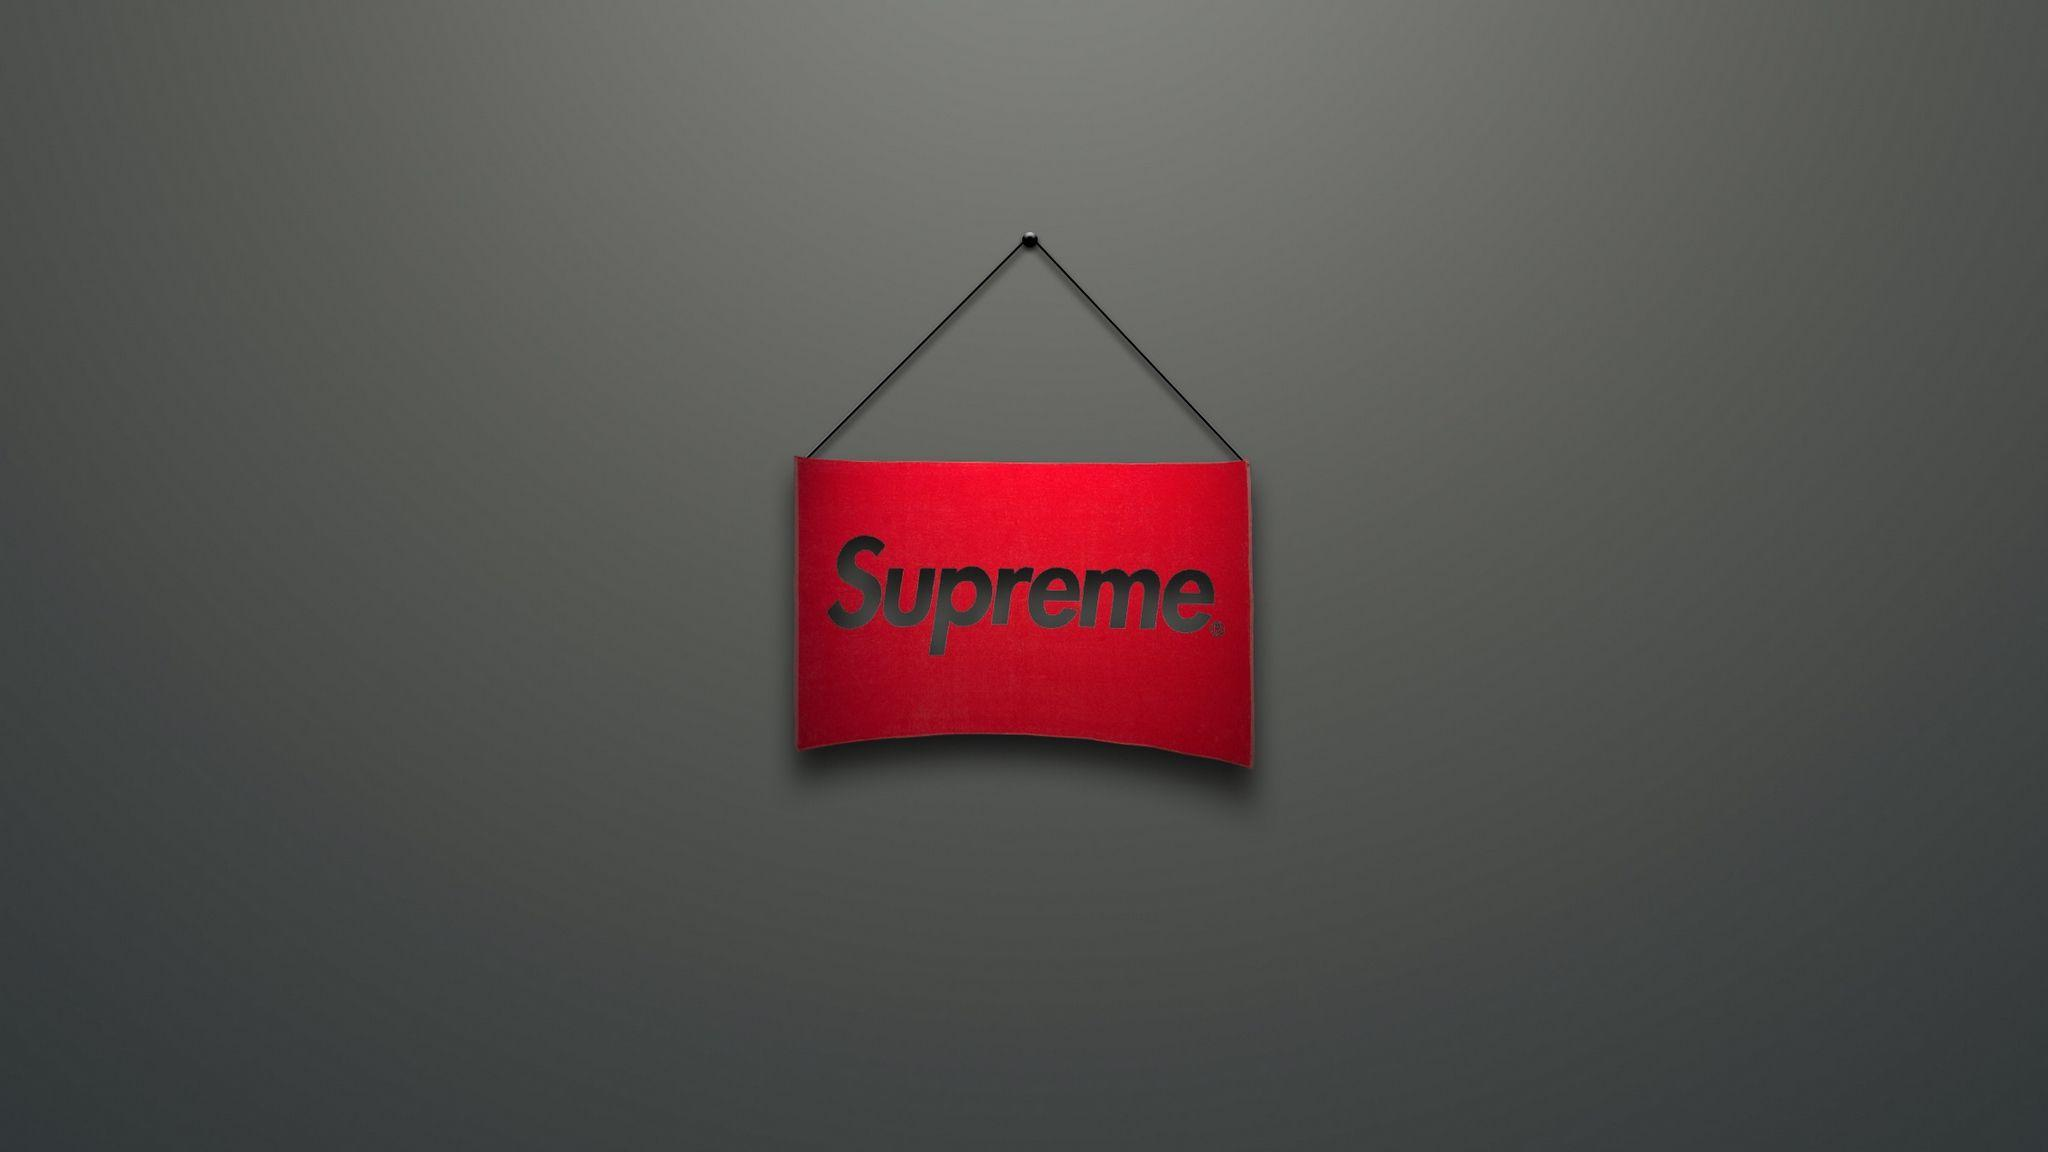 Download wallpapers 2048x1152 supreme, logo, red, minimalism